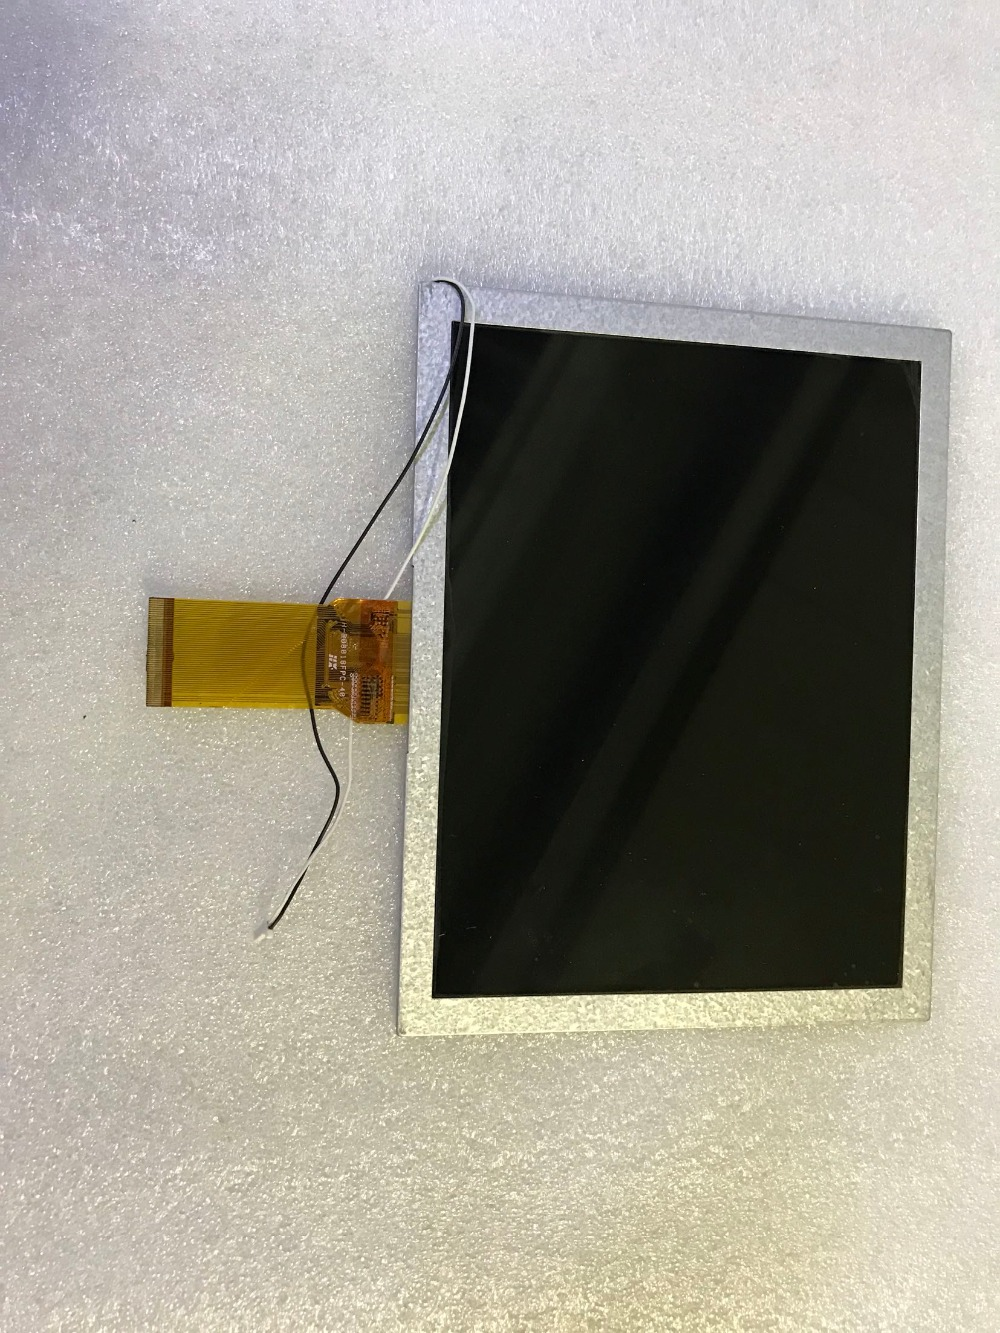 free shipping Original New 8 inch LCD screen original cable Model: H-B08018FPC-40 free shipping original 8 inch lcd screen model ls080ht111 with touch t080c 5rb011n 0a18r1 050pn